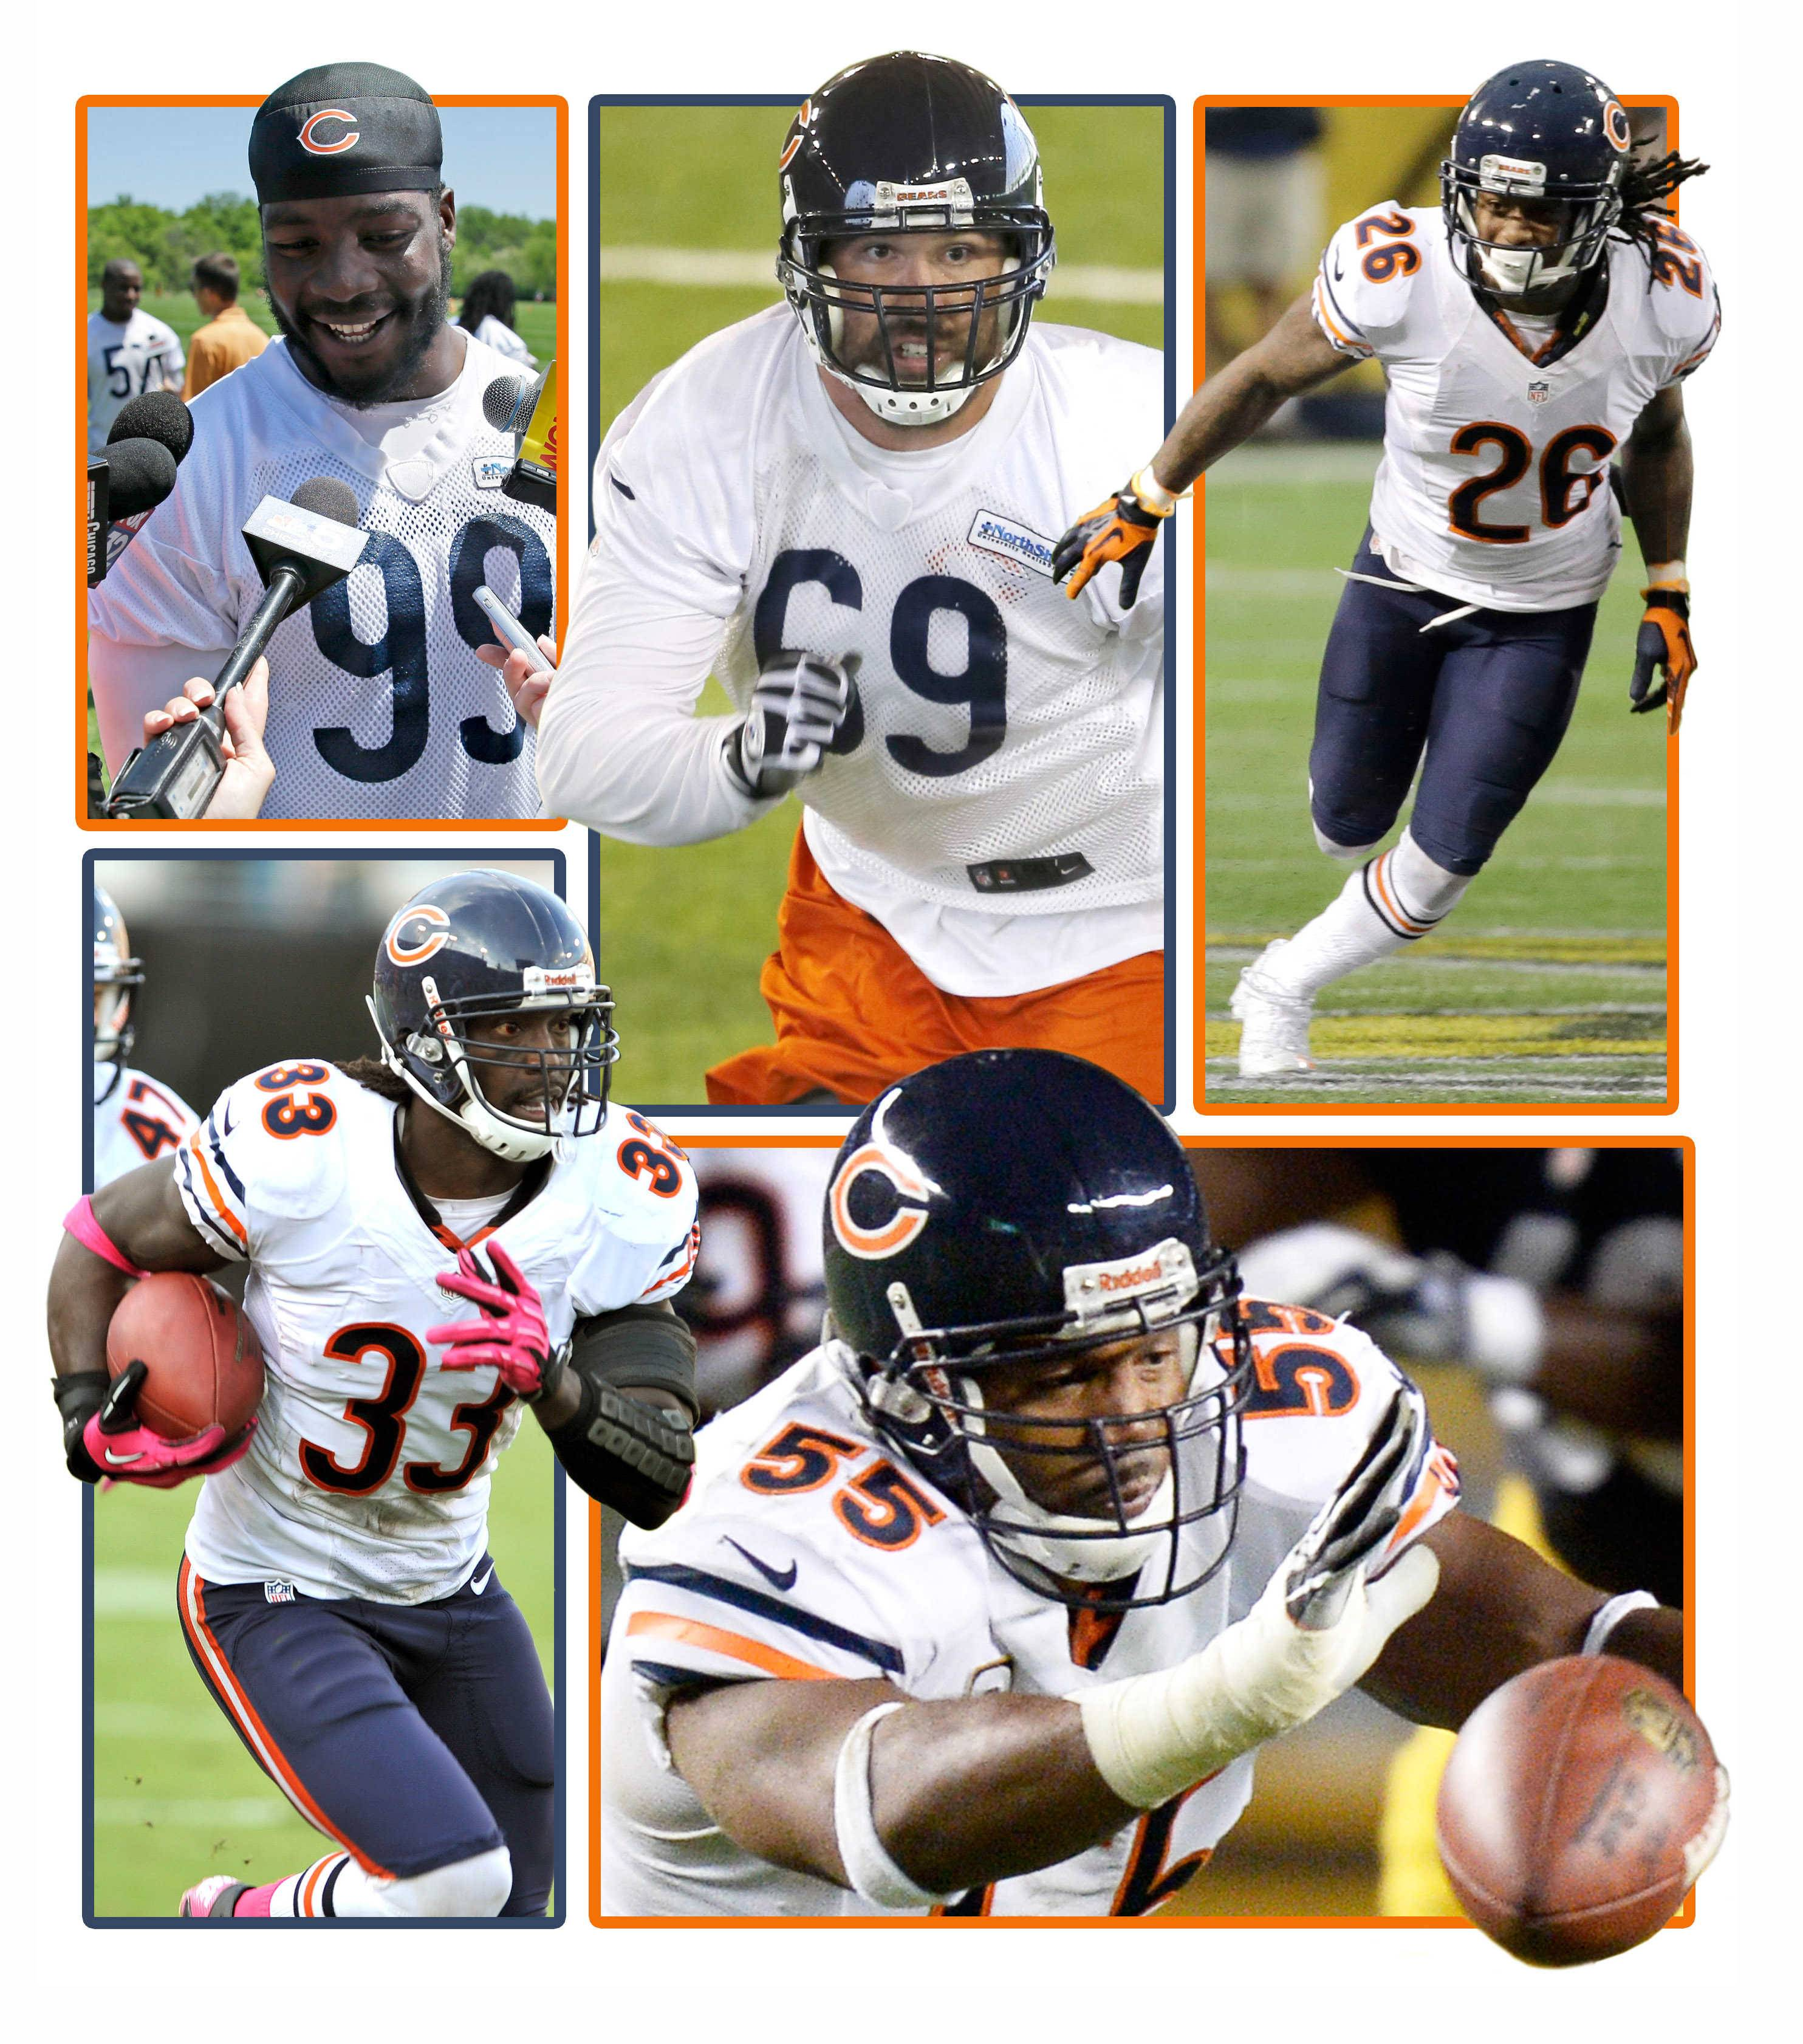 Clockwise from upper left, Lamarr Houston, Jared Allen, Tim Jennings, Lance Briggs, and Charles Tillman are some key pieces of the Bears defense for 2014. Daily Herald sports writer Bob LeGere says there are plenty of questions (and room for improvement) on the Bears' defense as the team reports for training camp on Wednesday.